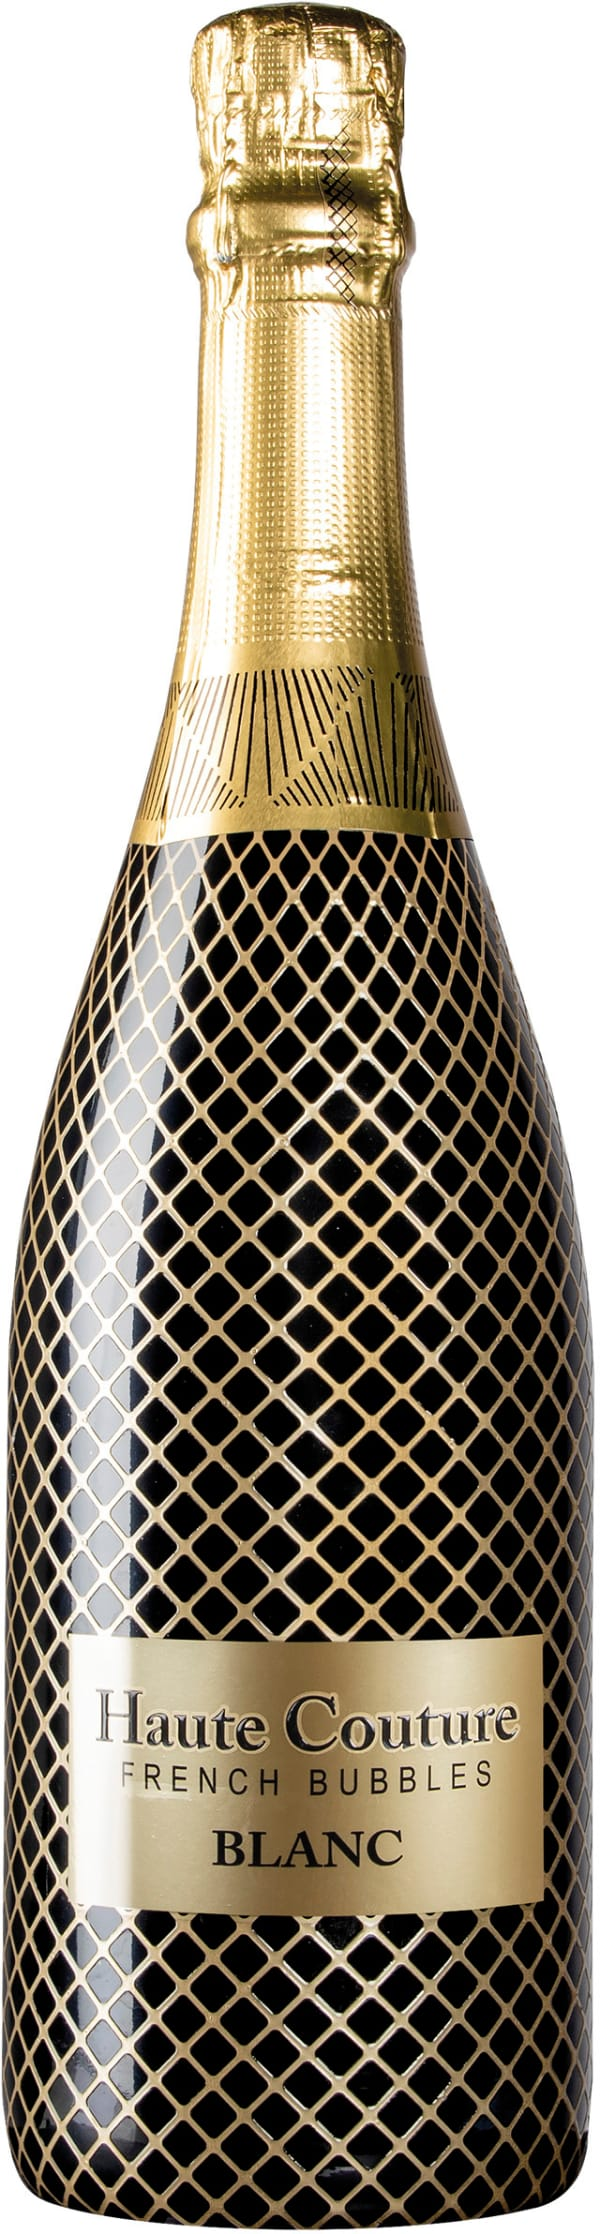 Haute Couture French Bubbles Blanc Dry